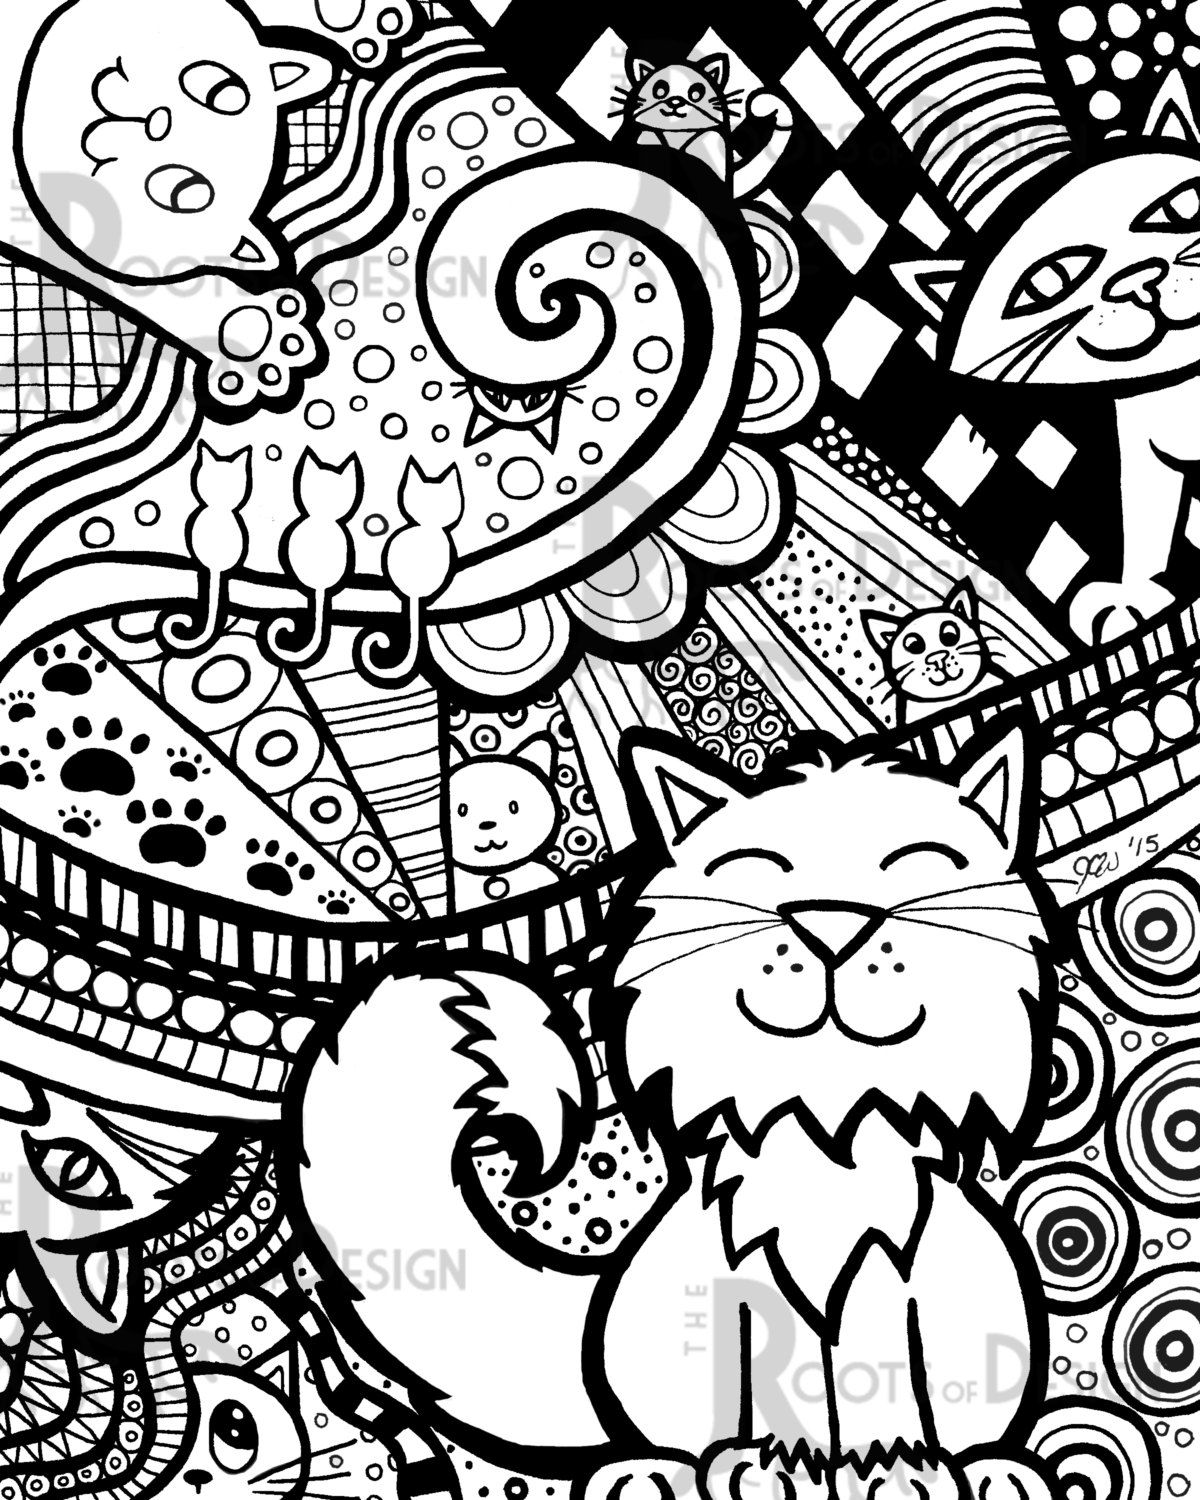 Instant Download Coloring Page Cat Art Print Zentangle Etsy Coloring Pages Cat Art Print Cat Coloring Page [ 1500 x 1200 Pixel ]